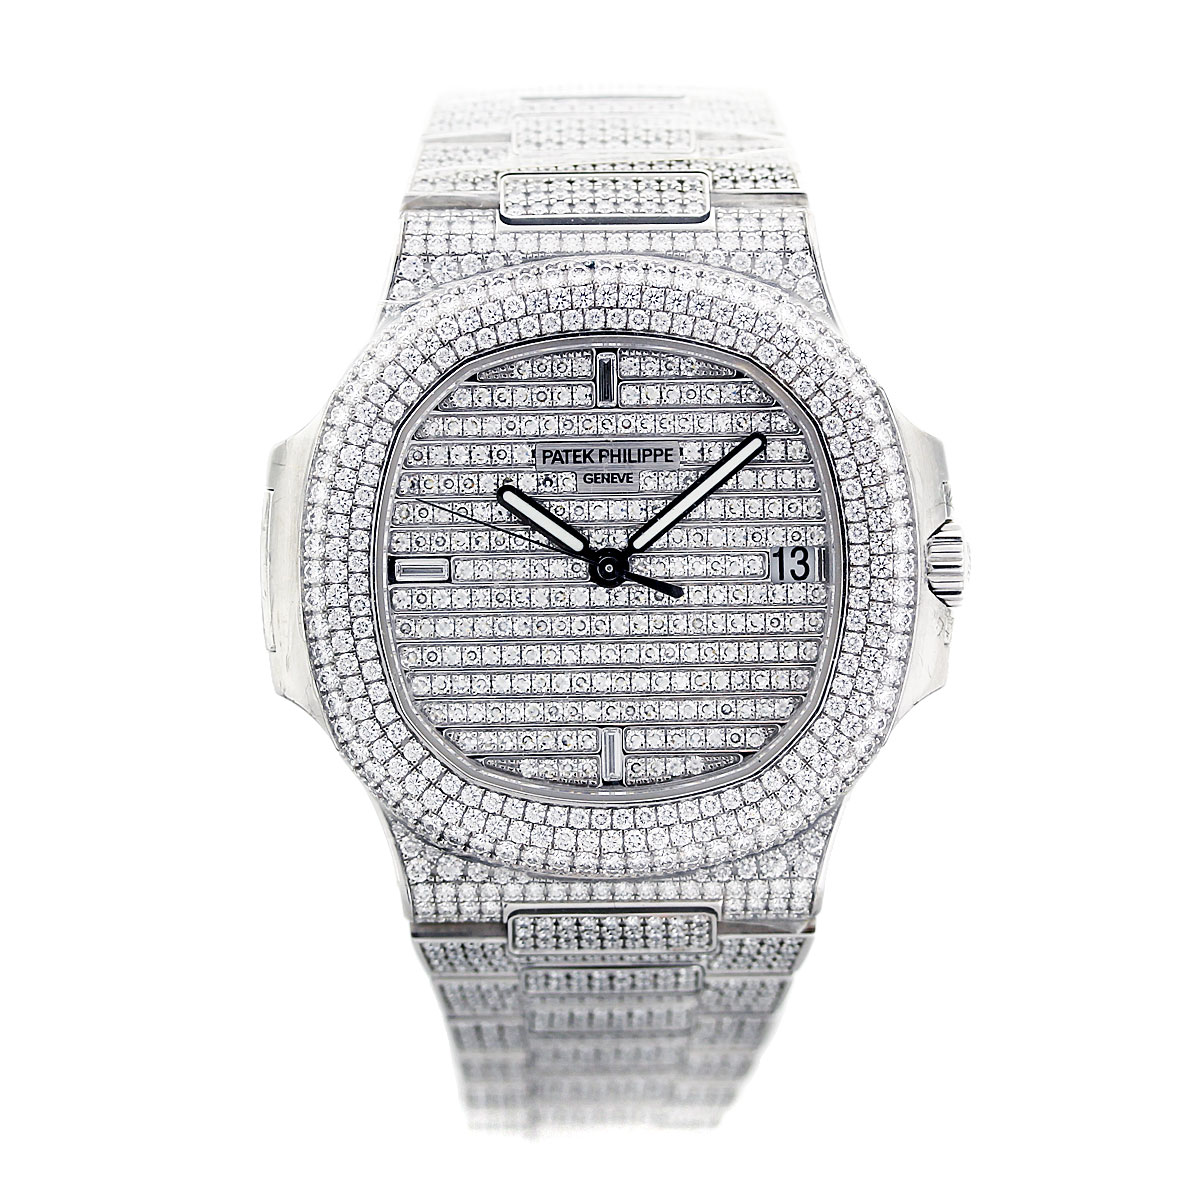 Diamond Watch Patek Philippe 5719 1g Nautilus Diamond Watch